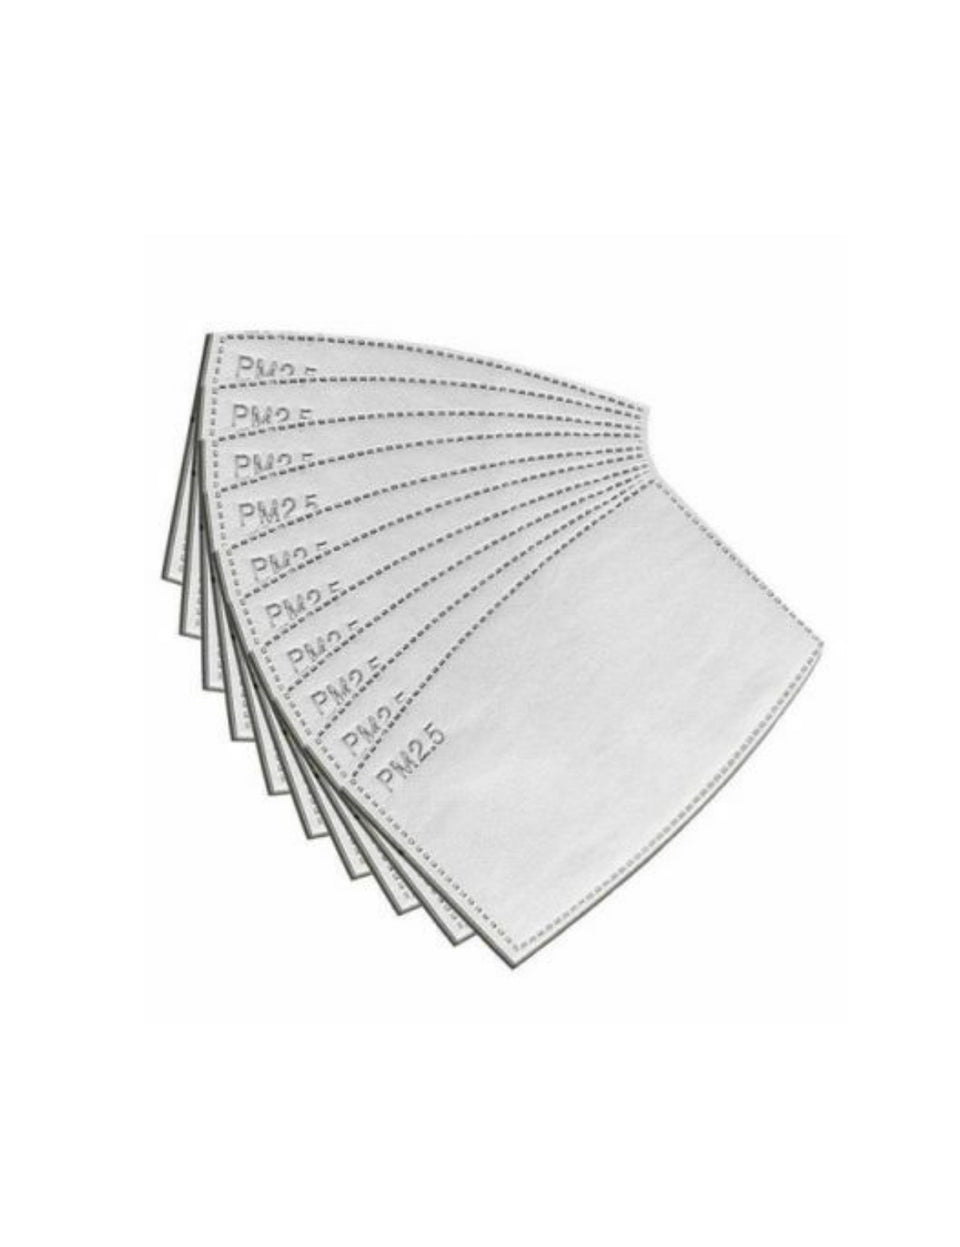 PM 2.5 Filters (100 Pack)